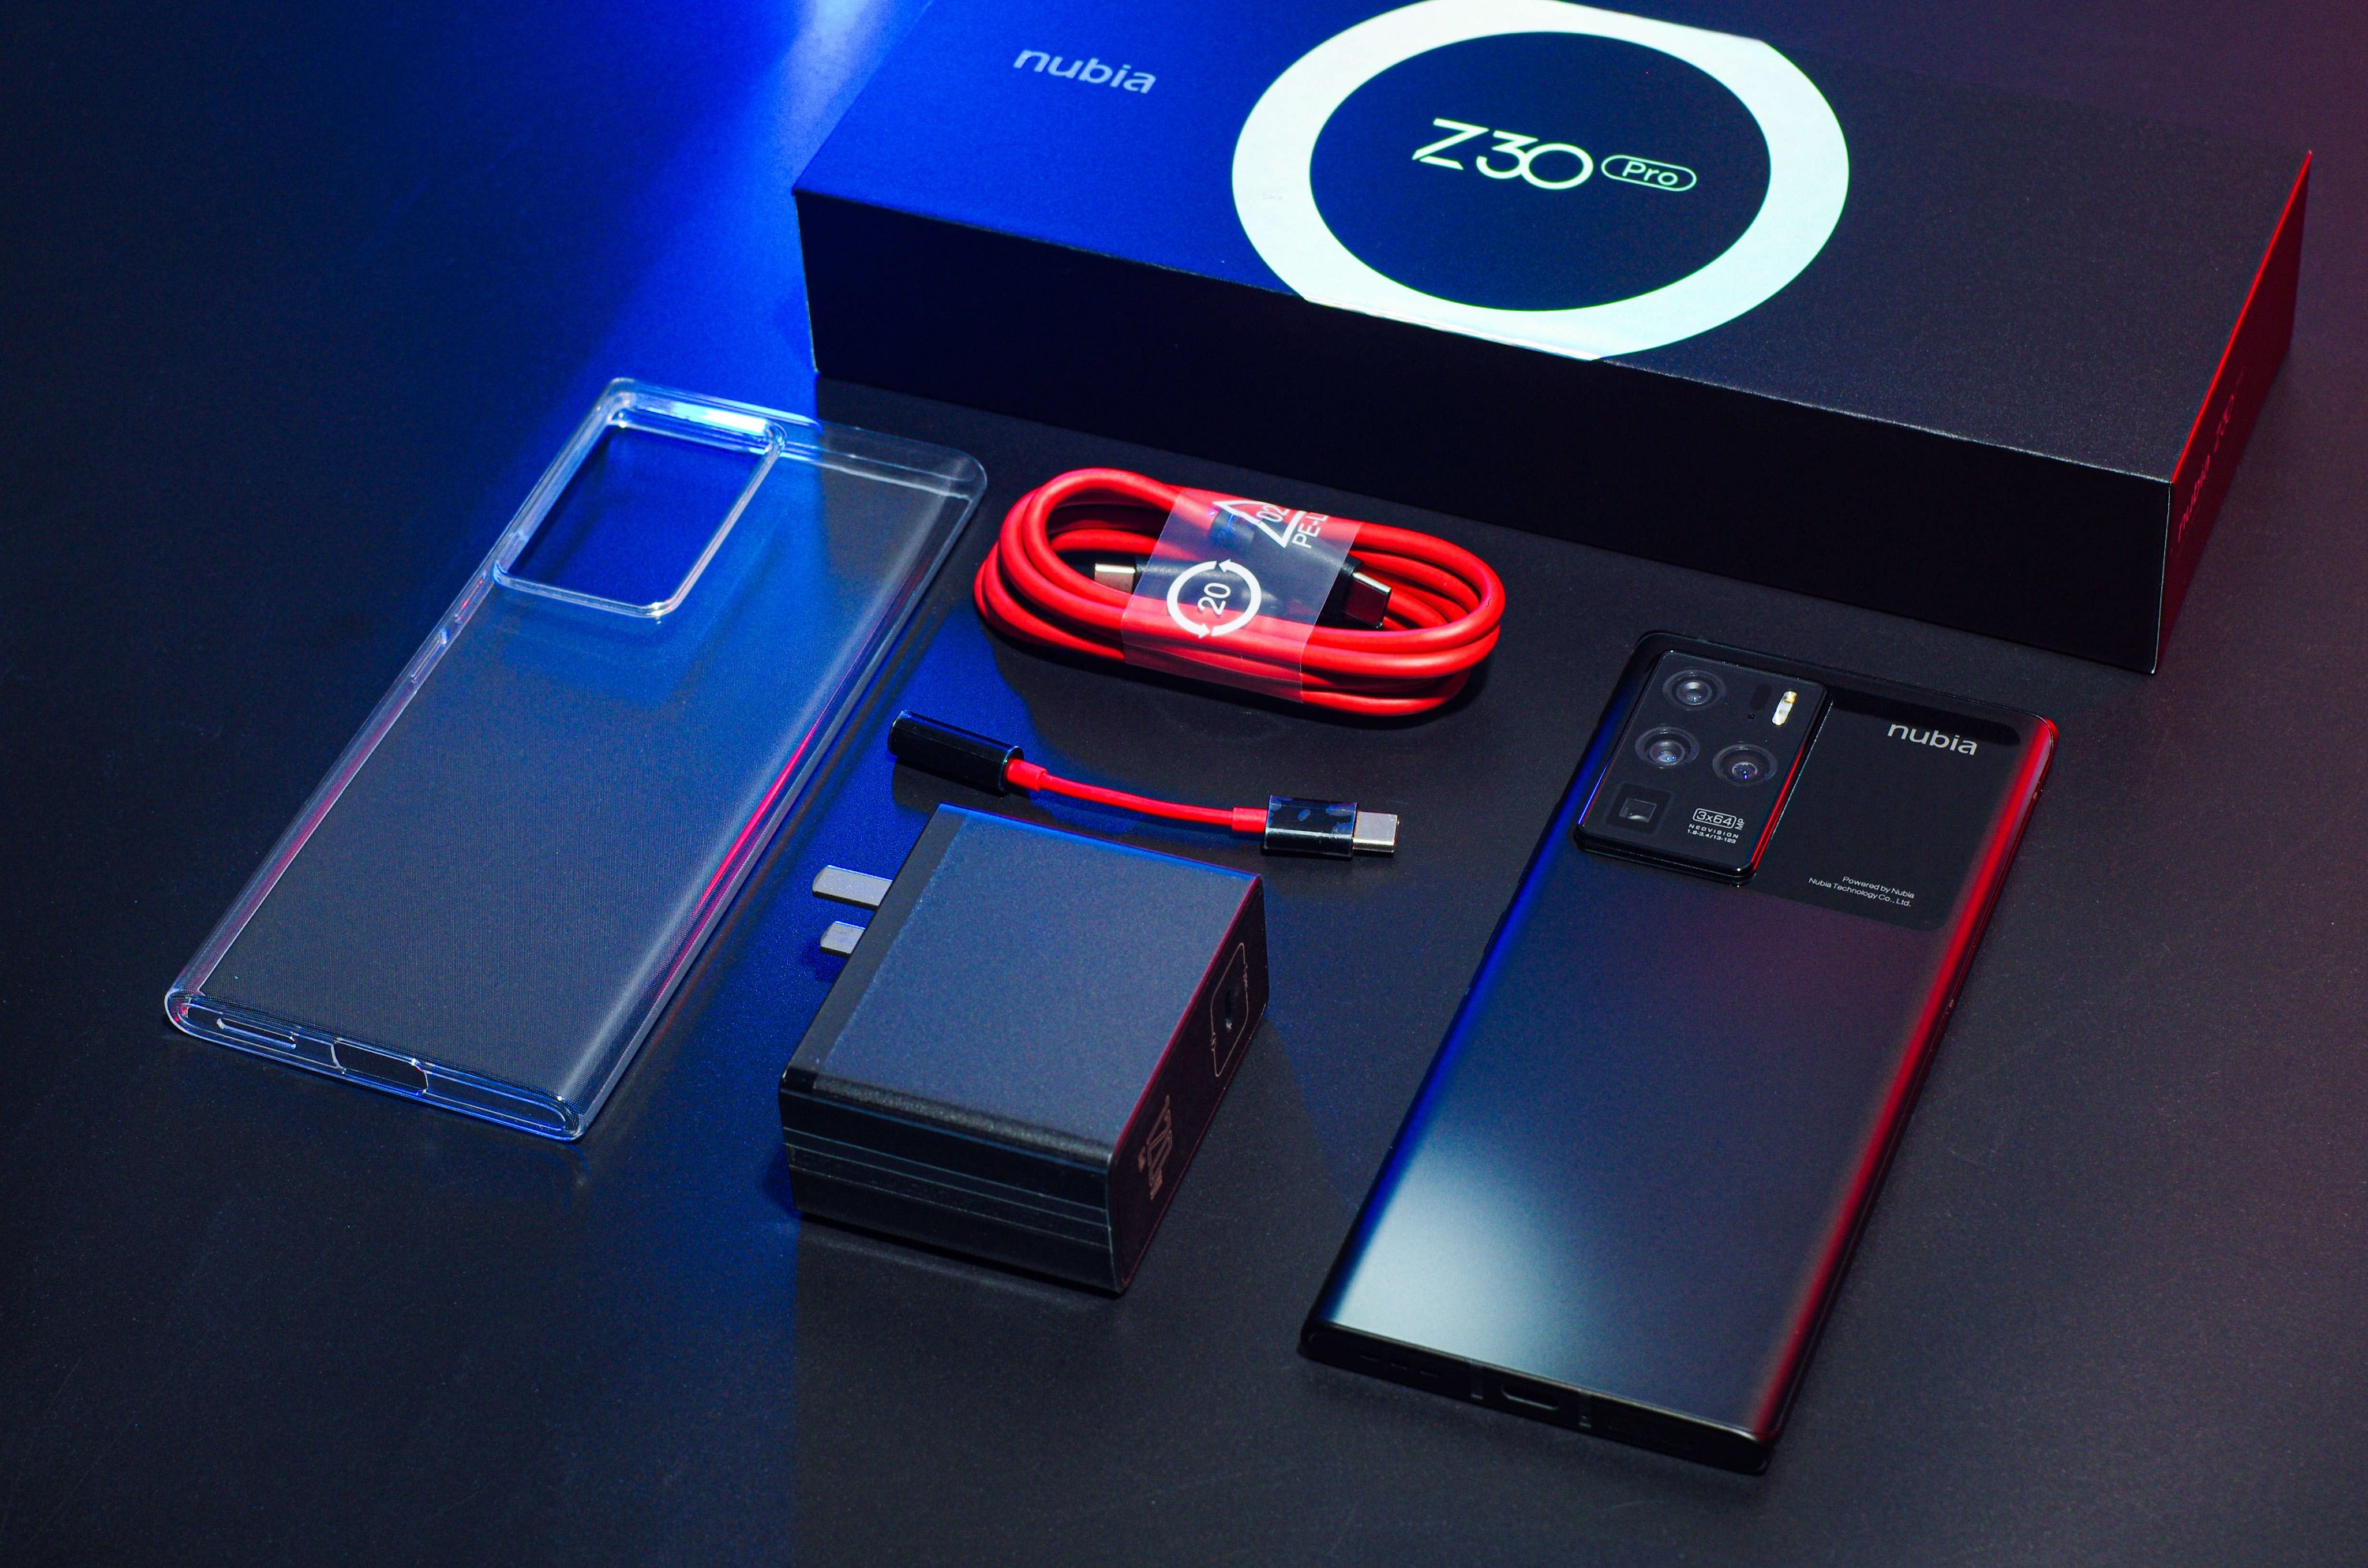 Nubia Z30 Pro Package comes with 120W GaN charger, data cable, Type-C to 3.5mm, phone case